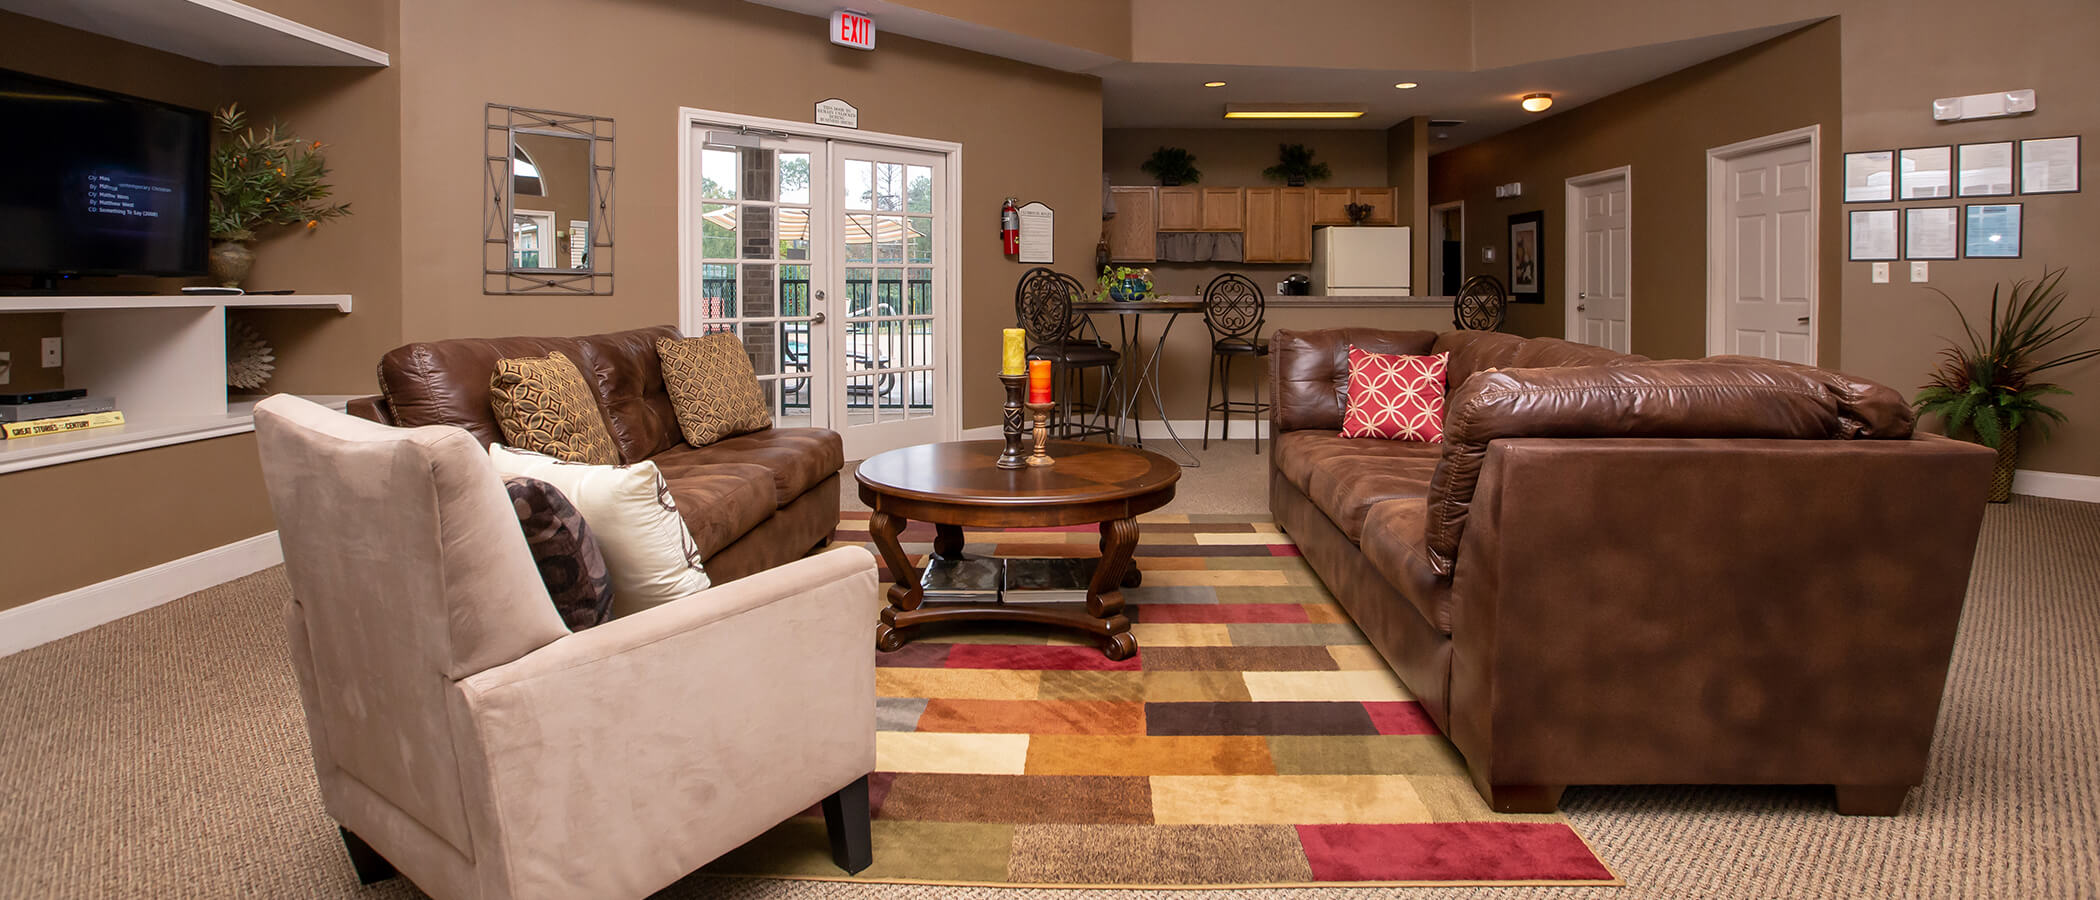 Parkview Gardens Townhomes slideshow image 4